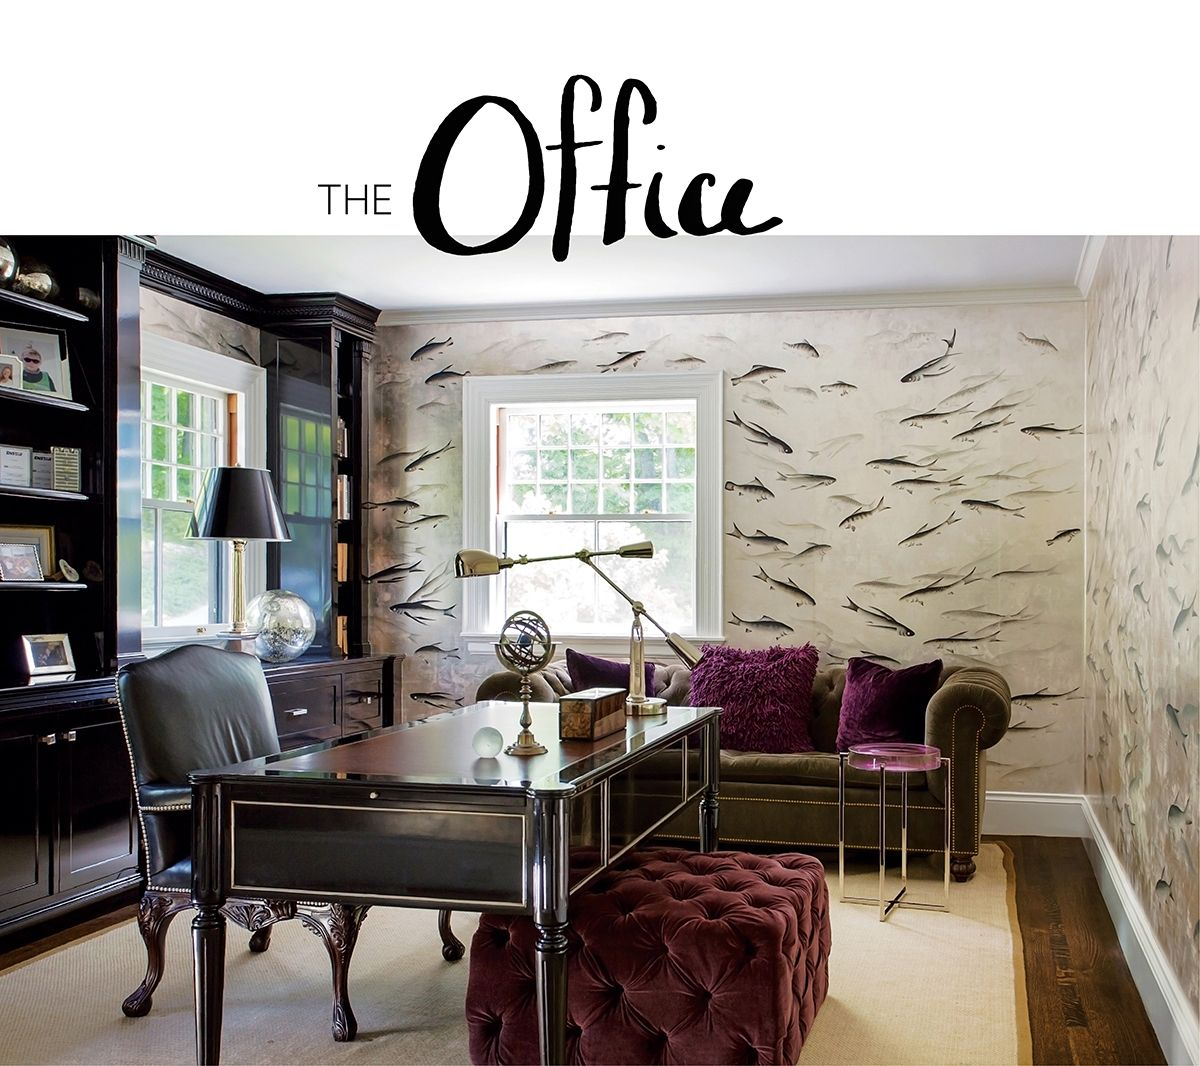 wallpaper designs for office. Kristin Paton Home \u0026 Interiors Designed Award Winning Office With De Gournay Wallpaper. #design #decor #office Wallpaper Designs For N